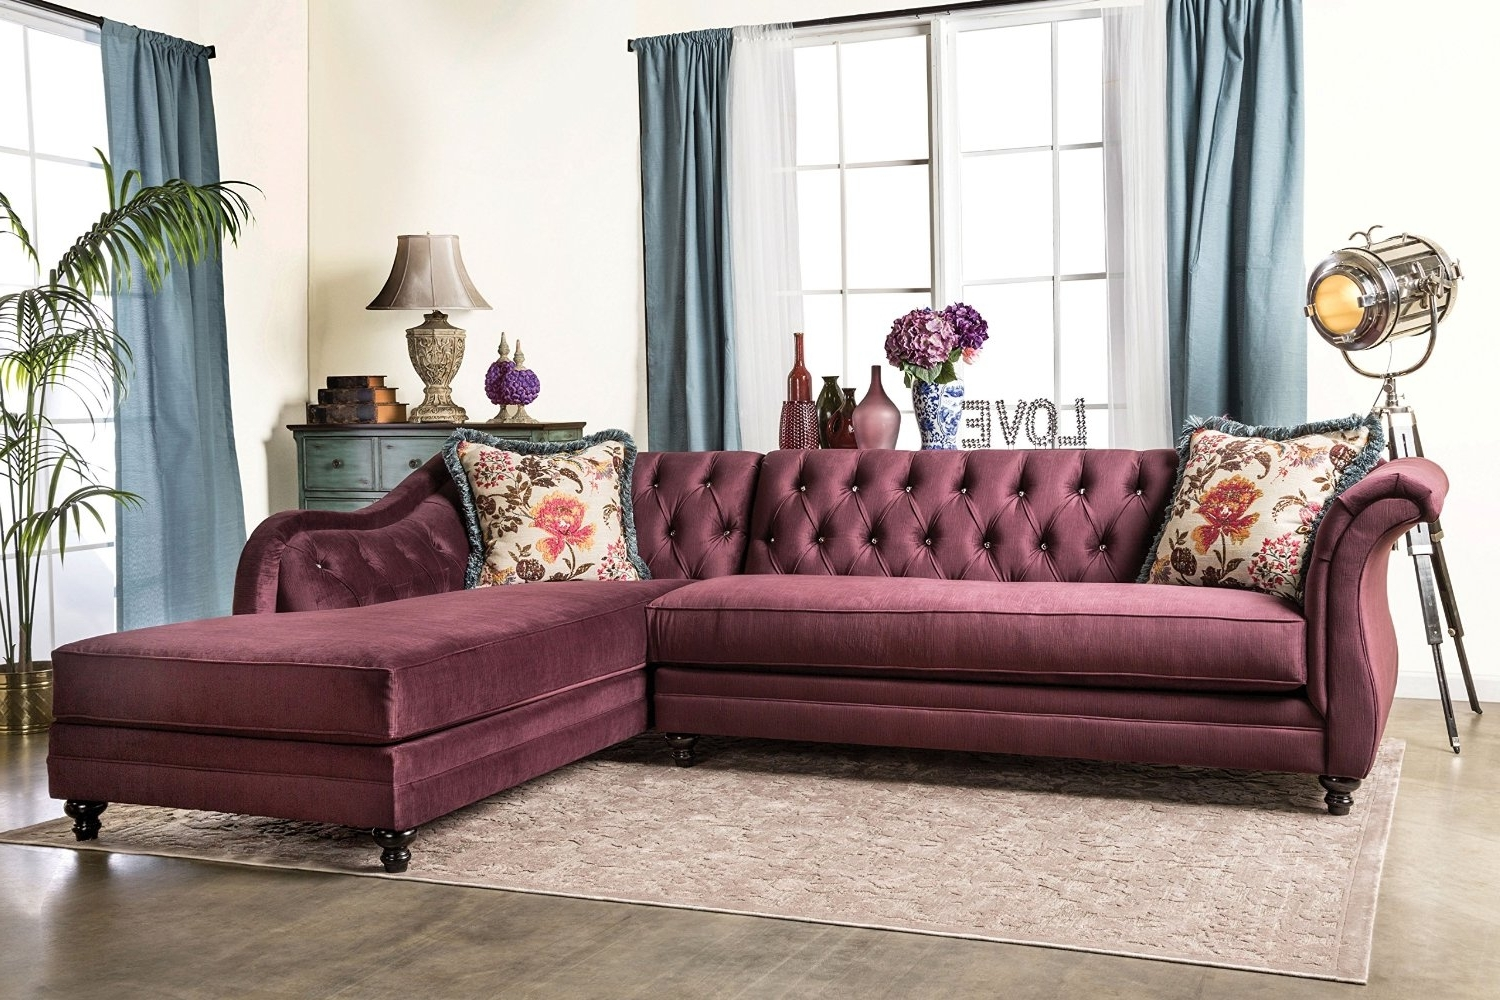 Well Known 25 Best Chesterfield Sofas To Buy In 2018 With Chesterfield Sofas (View 15 of 15)